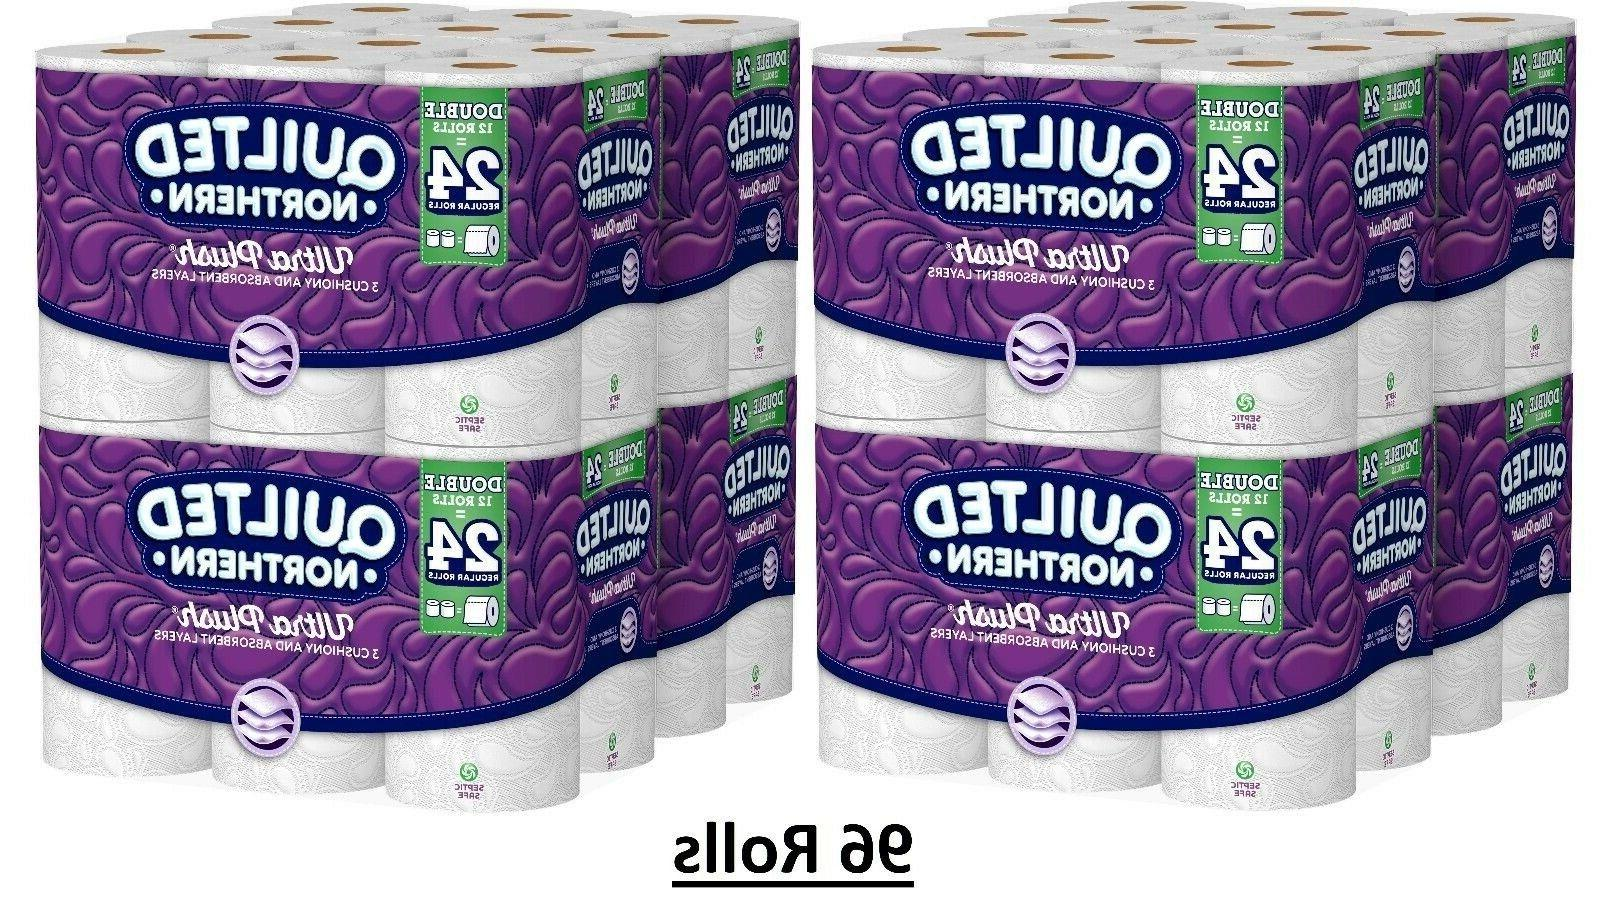 Quilted Northern Ultra Plush Bath Tissue Rolls Toilet Paper